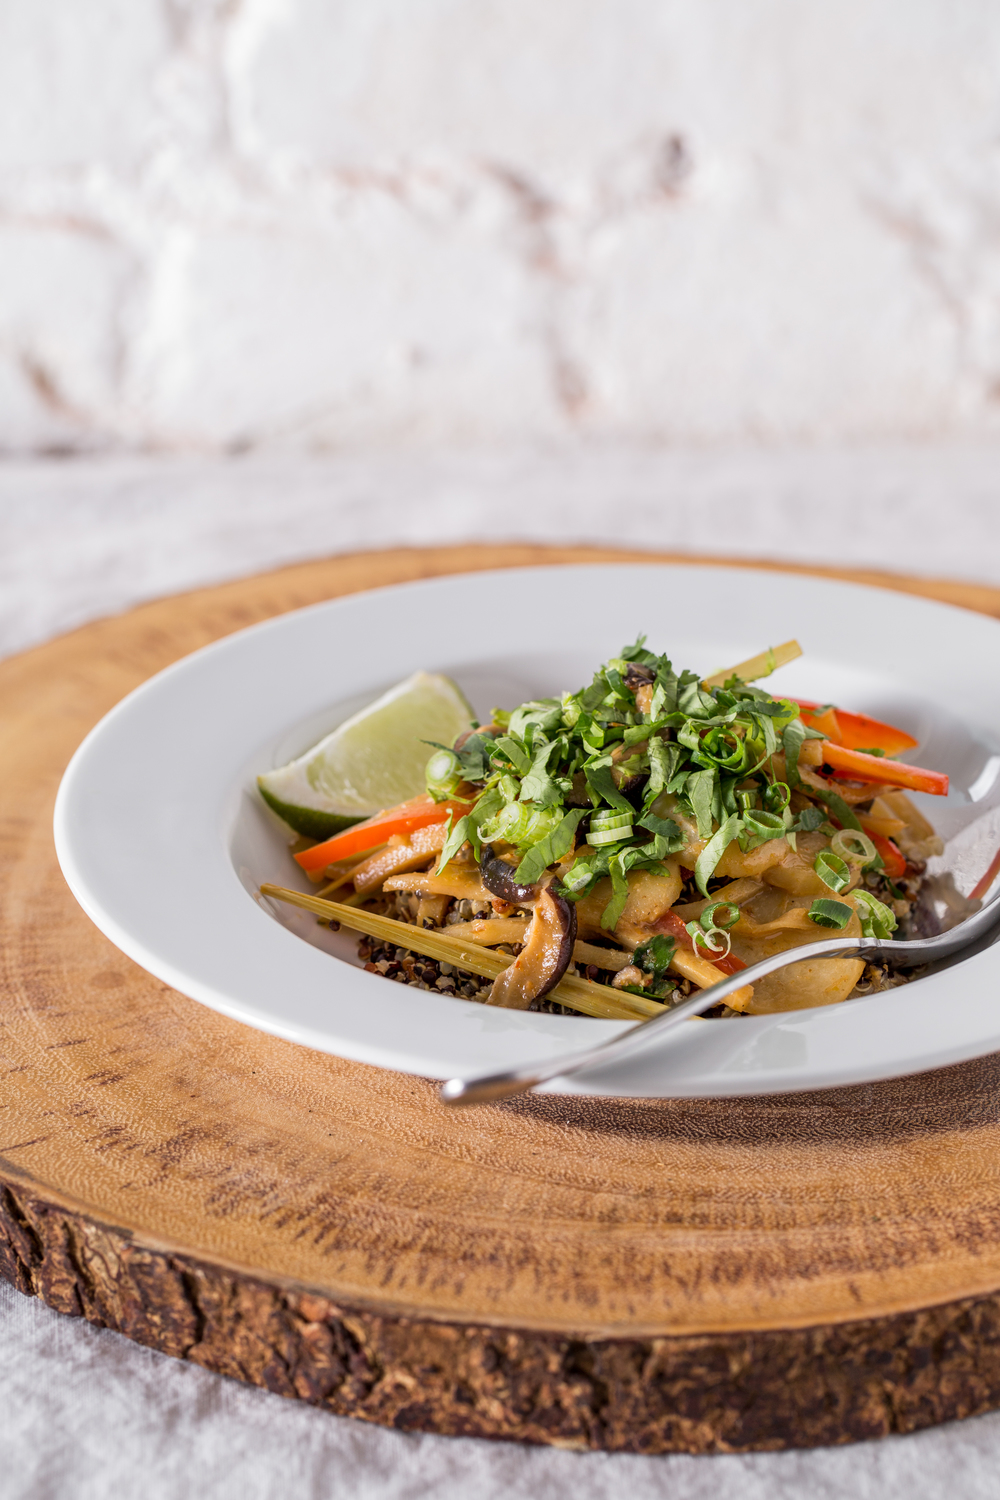 Vegetable Curry. Photo by Sarah Crowder.